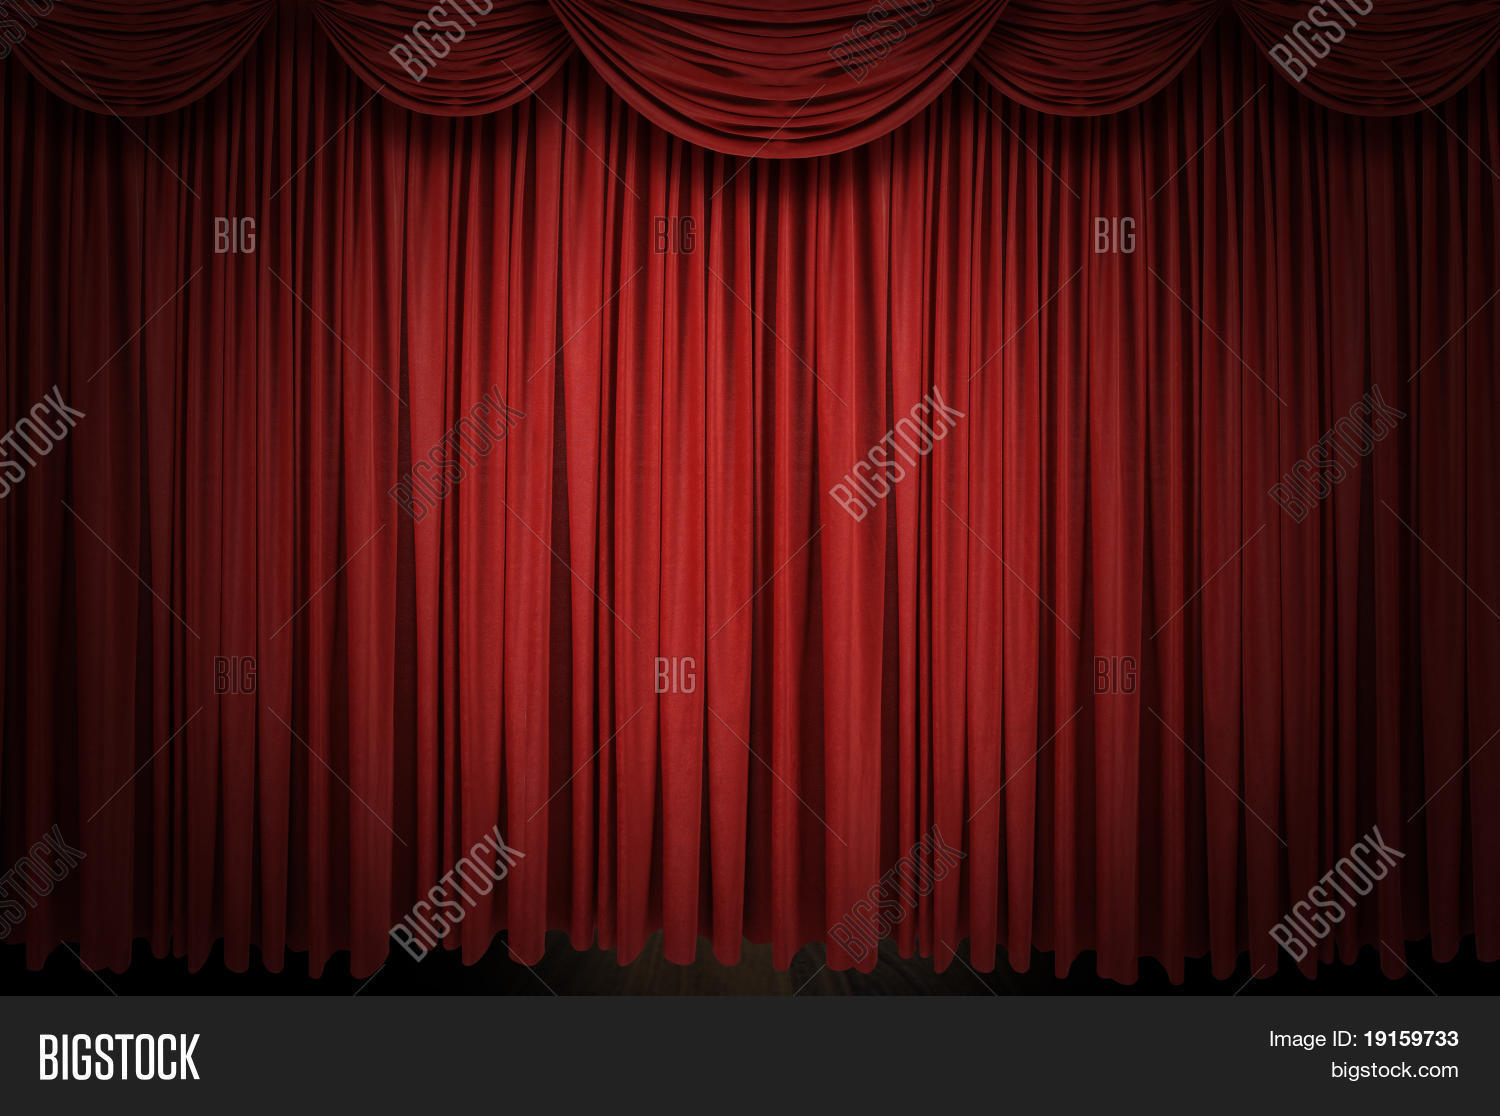 Red stage curtain with lights - Large Red Curtain Stage Opening With Spot Lights And Dark Background